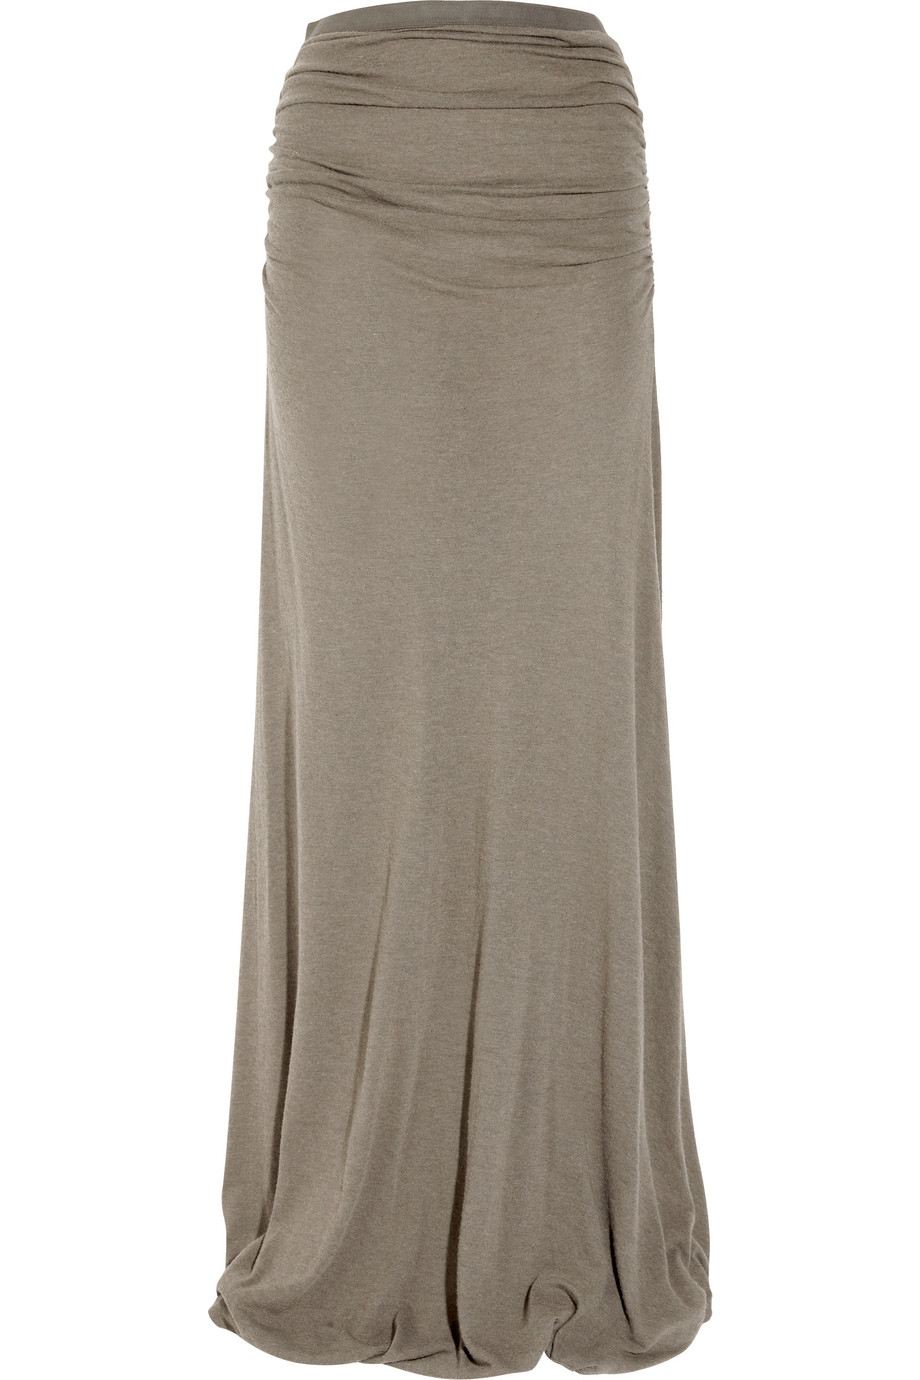 Jersey Grey maxi skirt pictures